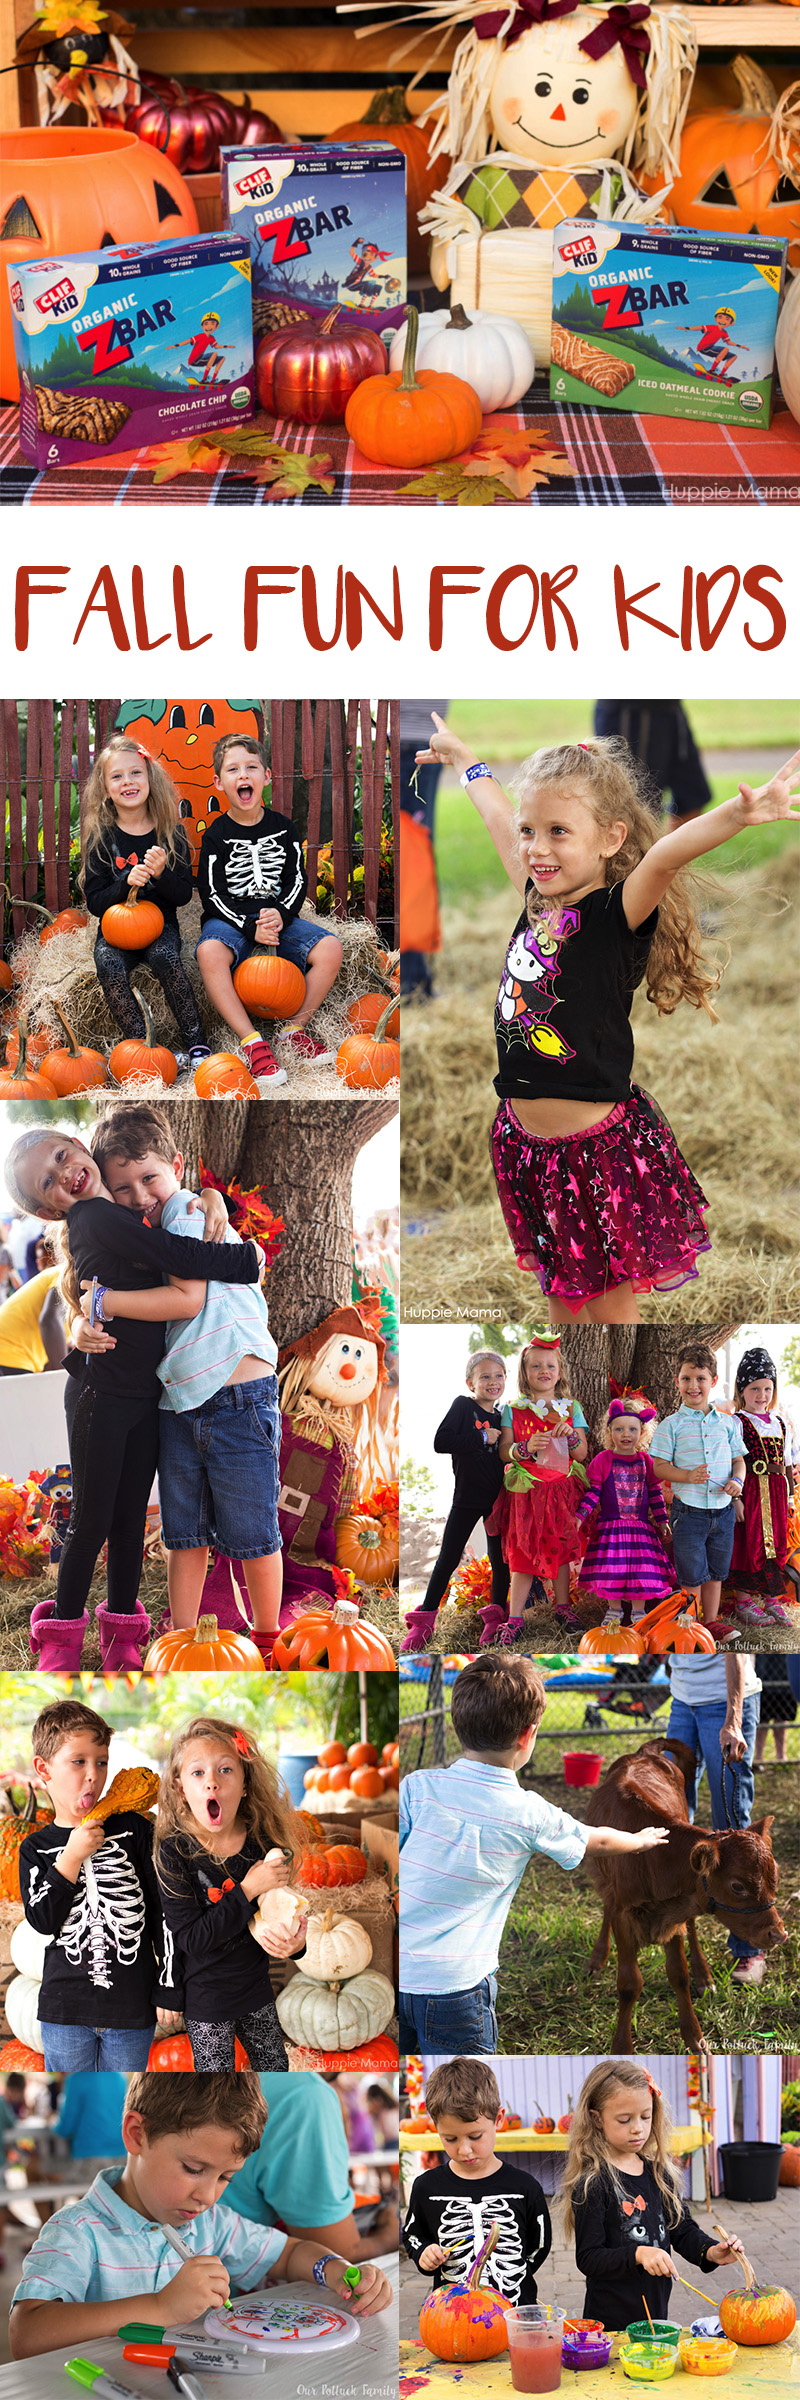 fall-fun-for-kids